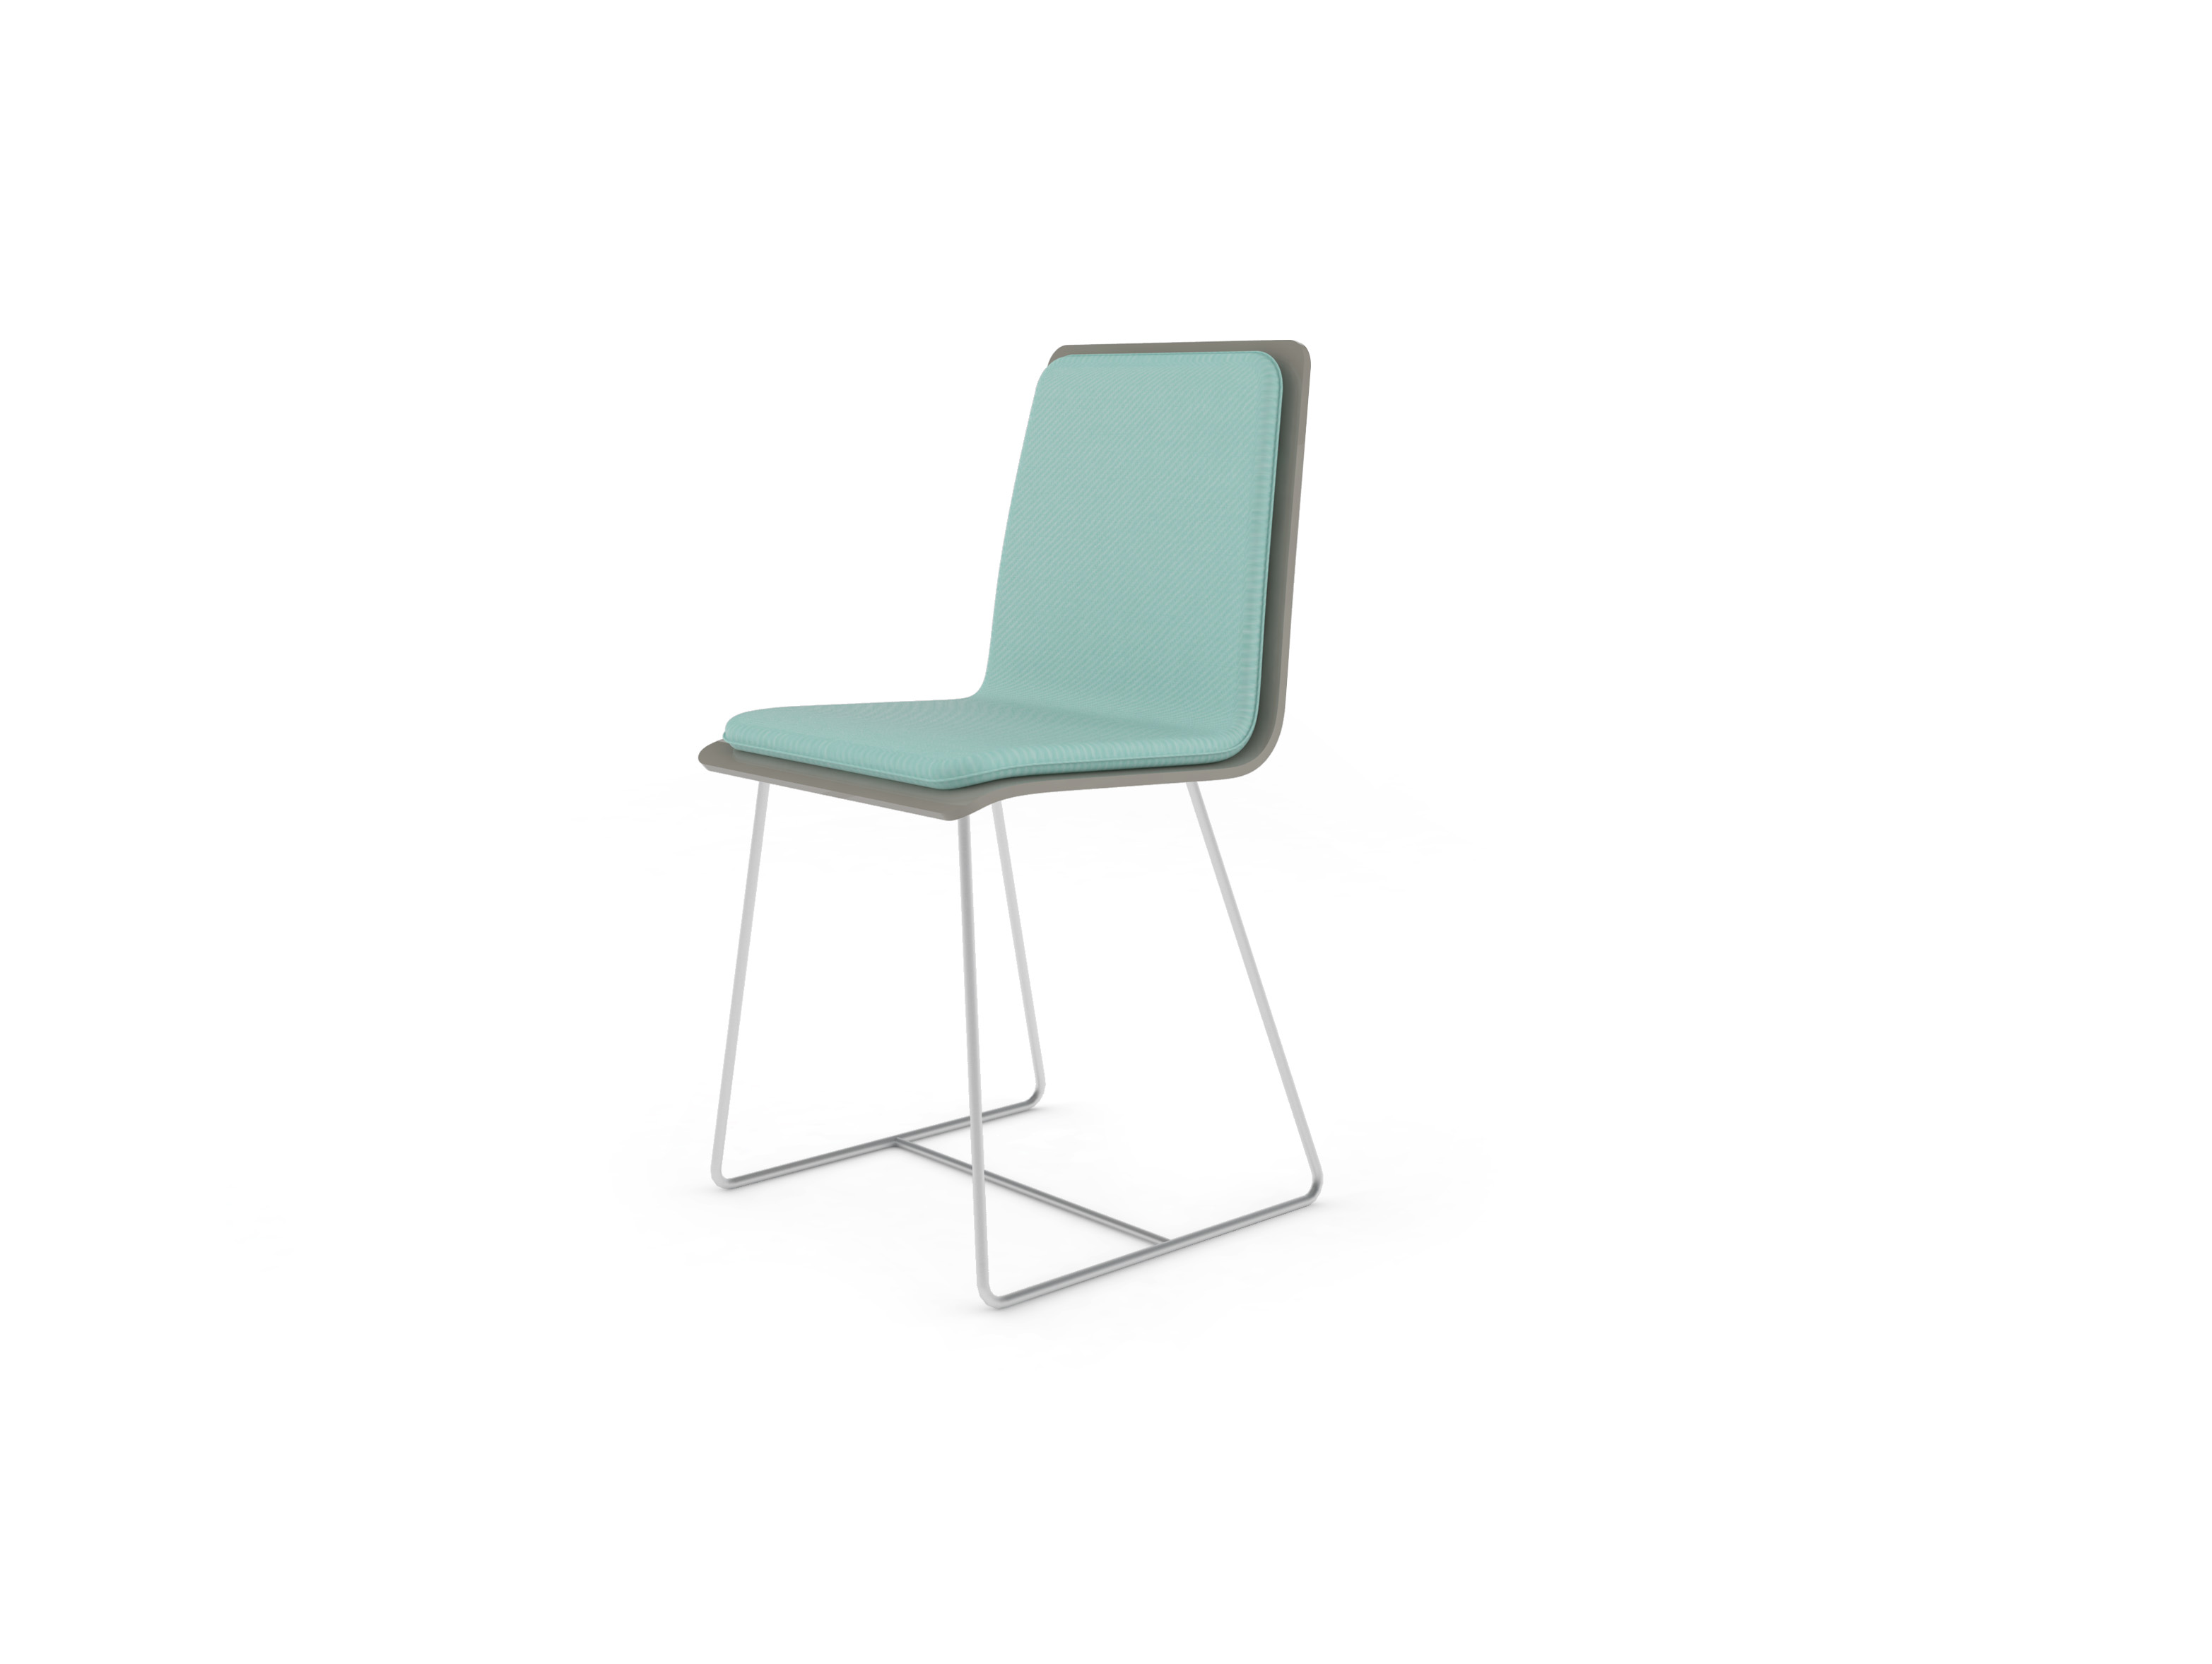 Chaise Bee outdoor PMMA gris perlé, coussin lagon